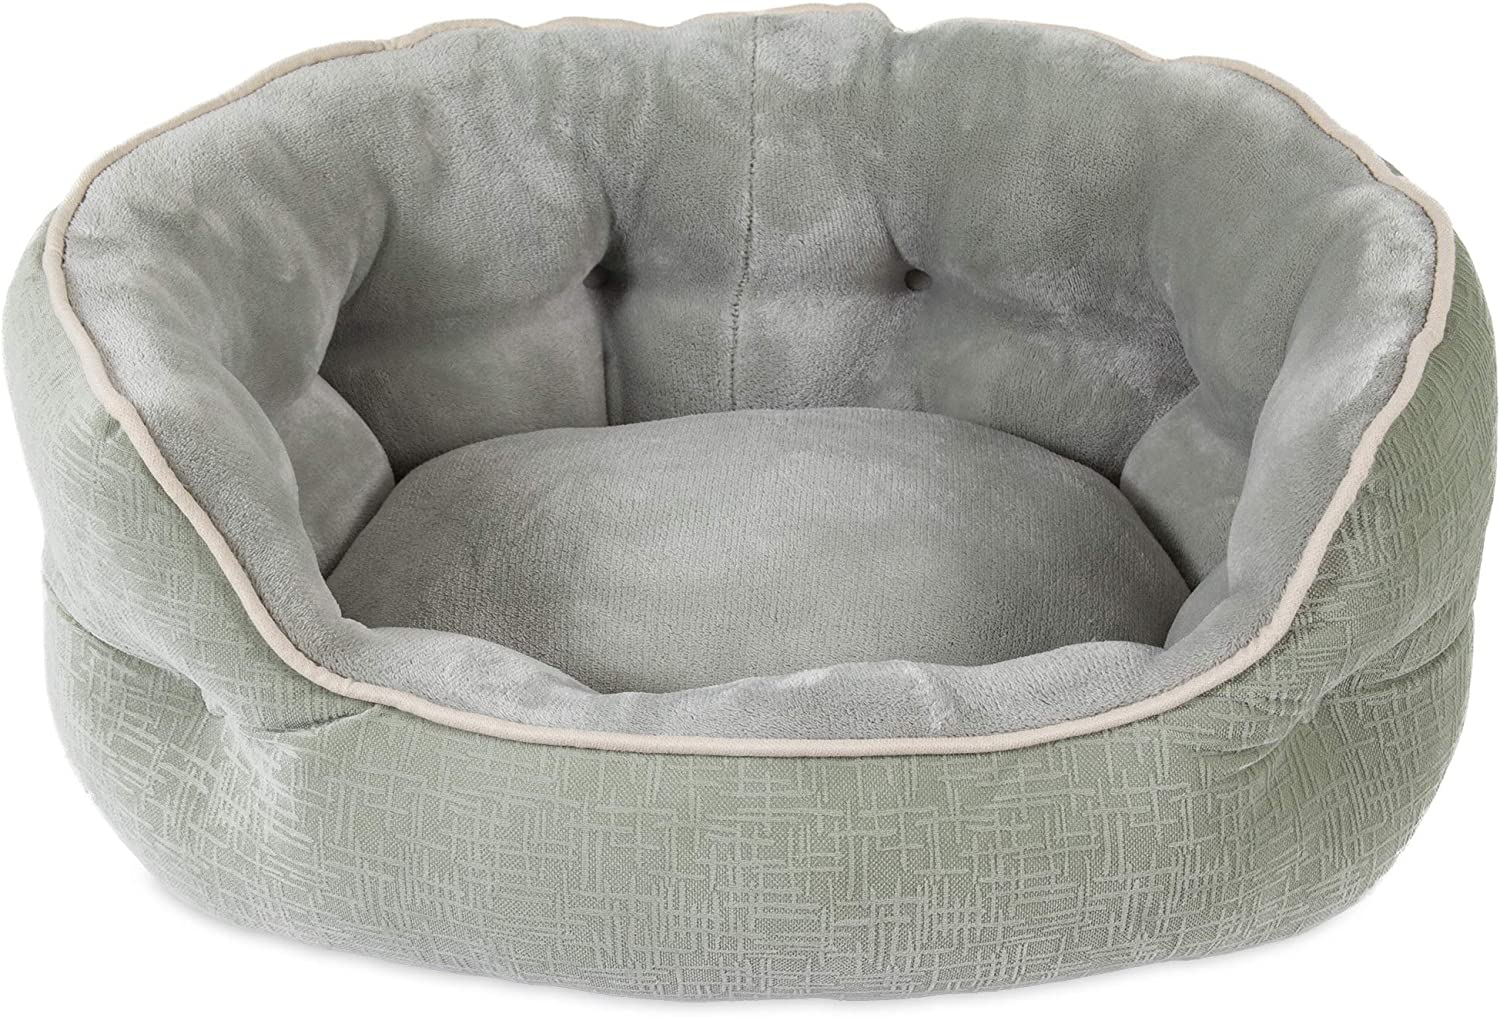 Paws Pals Pet Beds for Dogs and Cats – Pets Pillow Bed Best for Small, Medium, Large, XL, XXL XXXL Dog, Puppy, Cat Kittens – 2019 Newly Designed Indestructible Cuddler Couch Washable Accessories